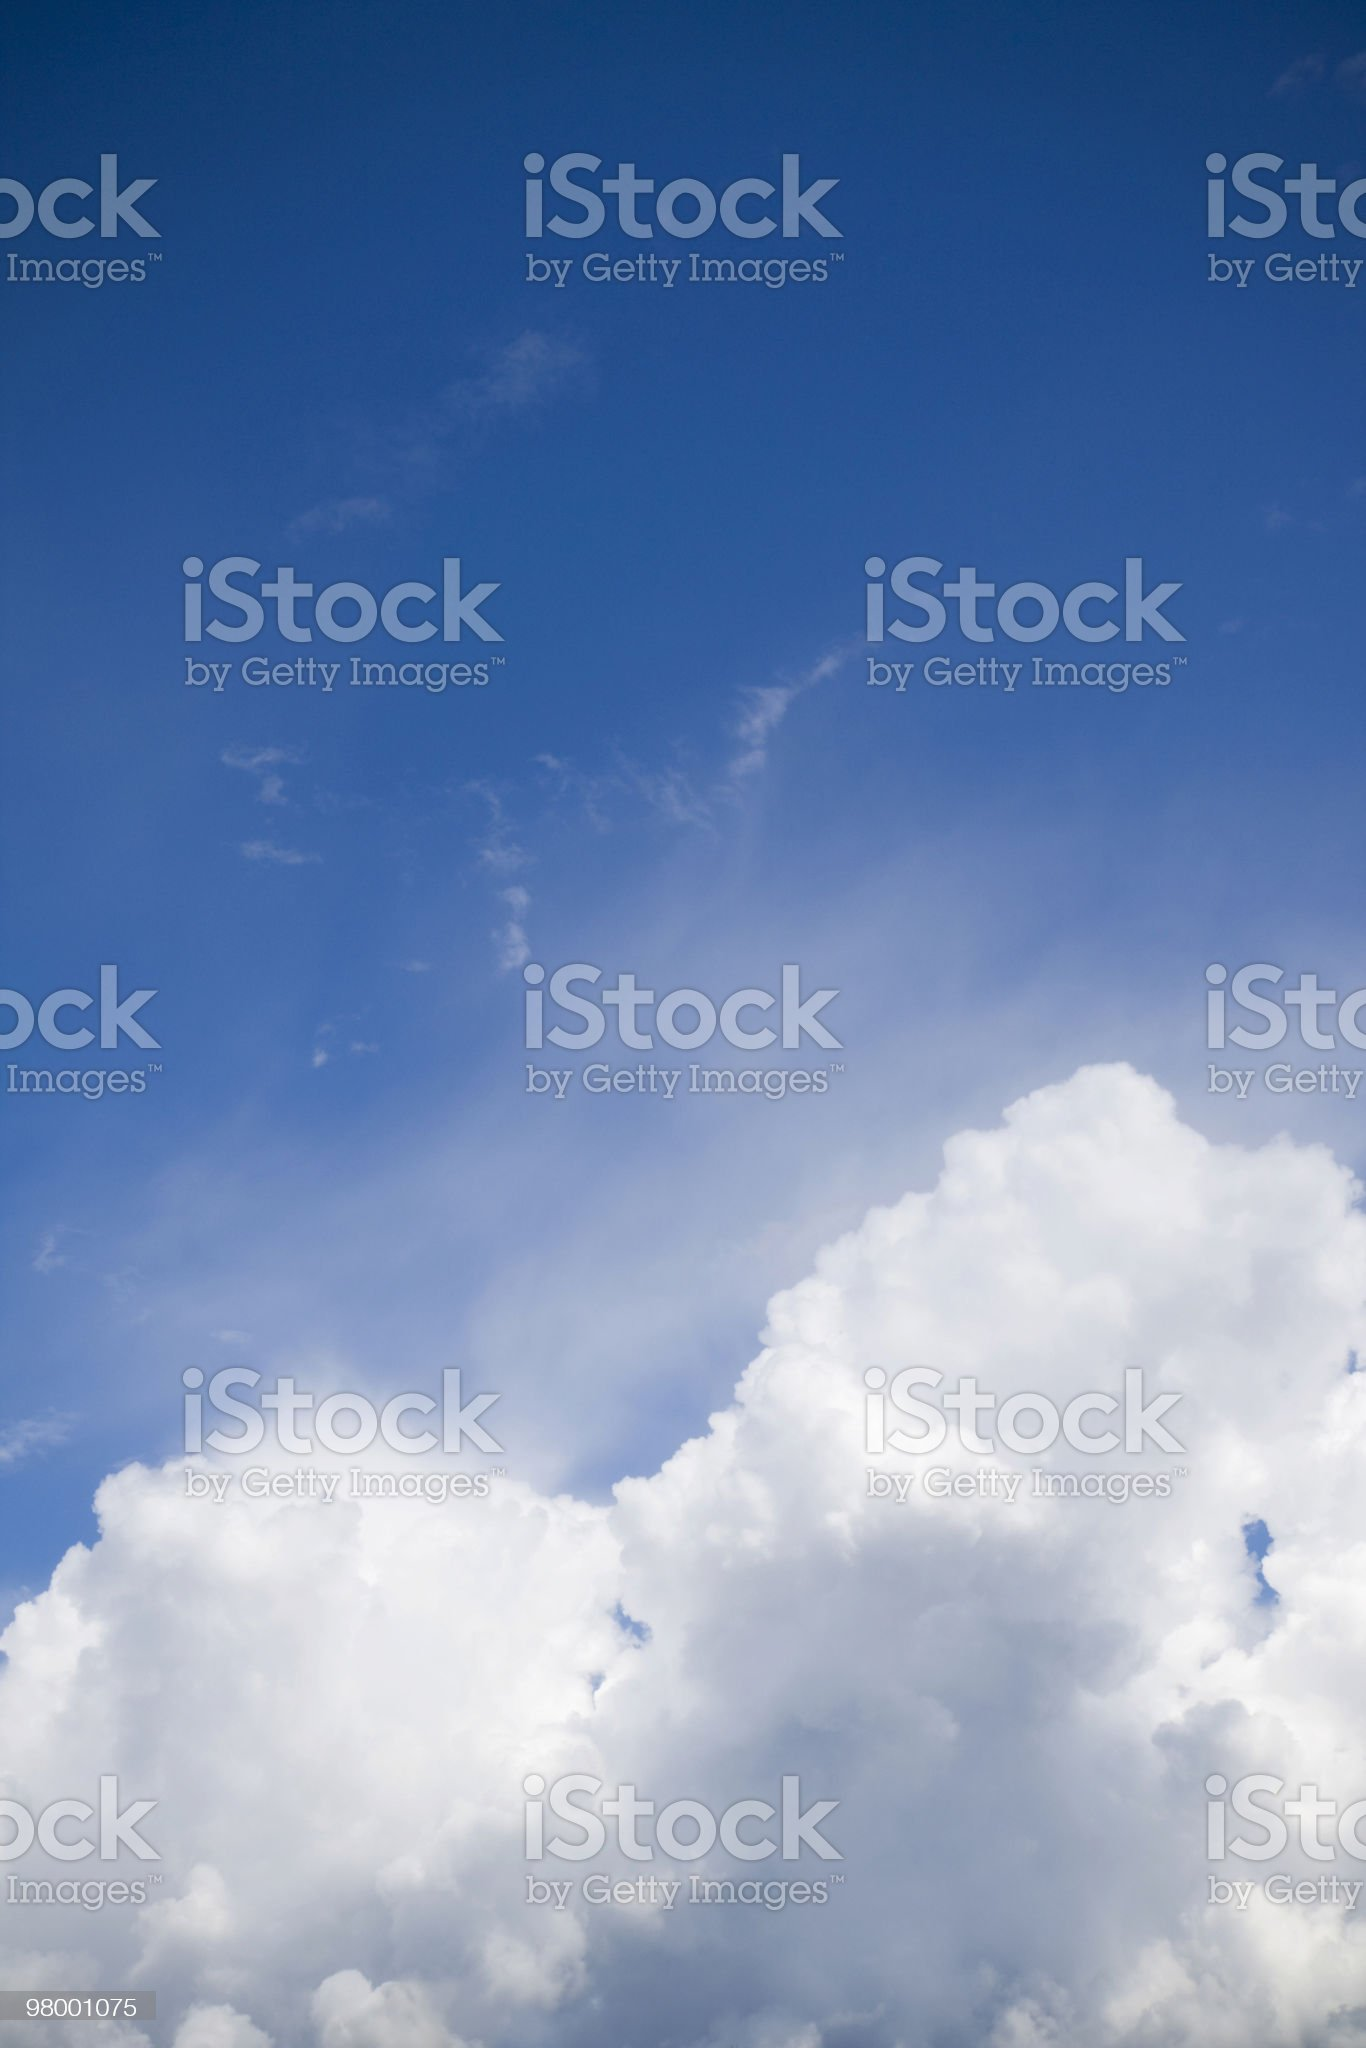 Bright clouds royalty-free stock photo